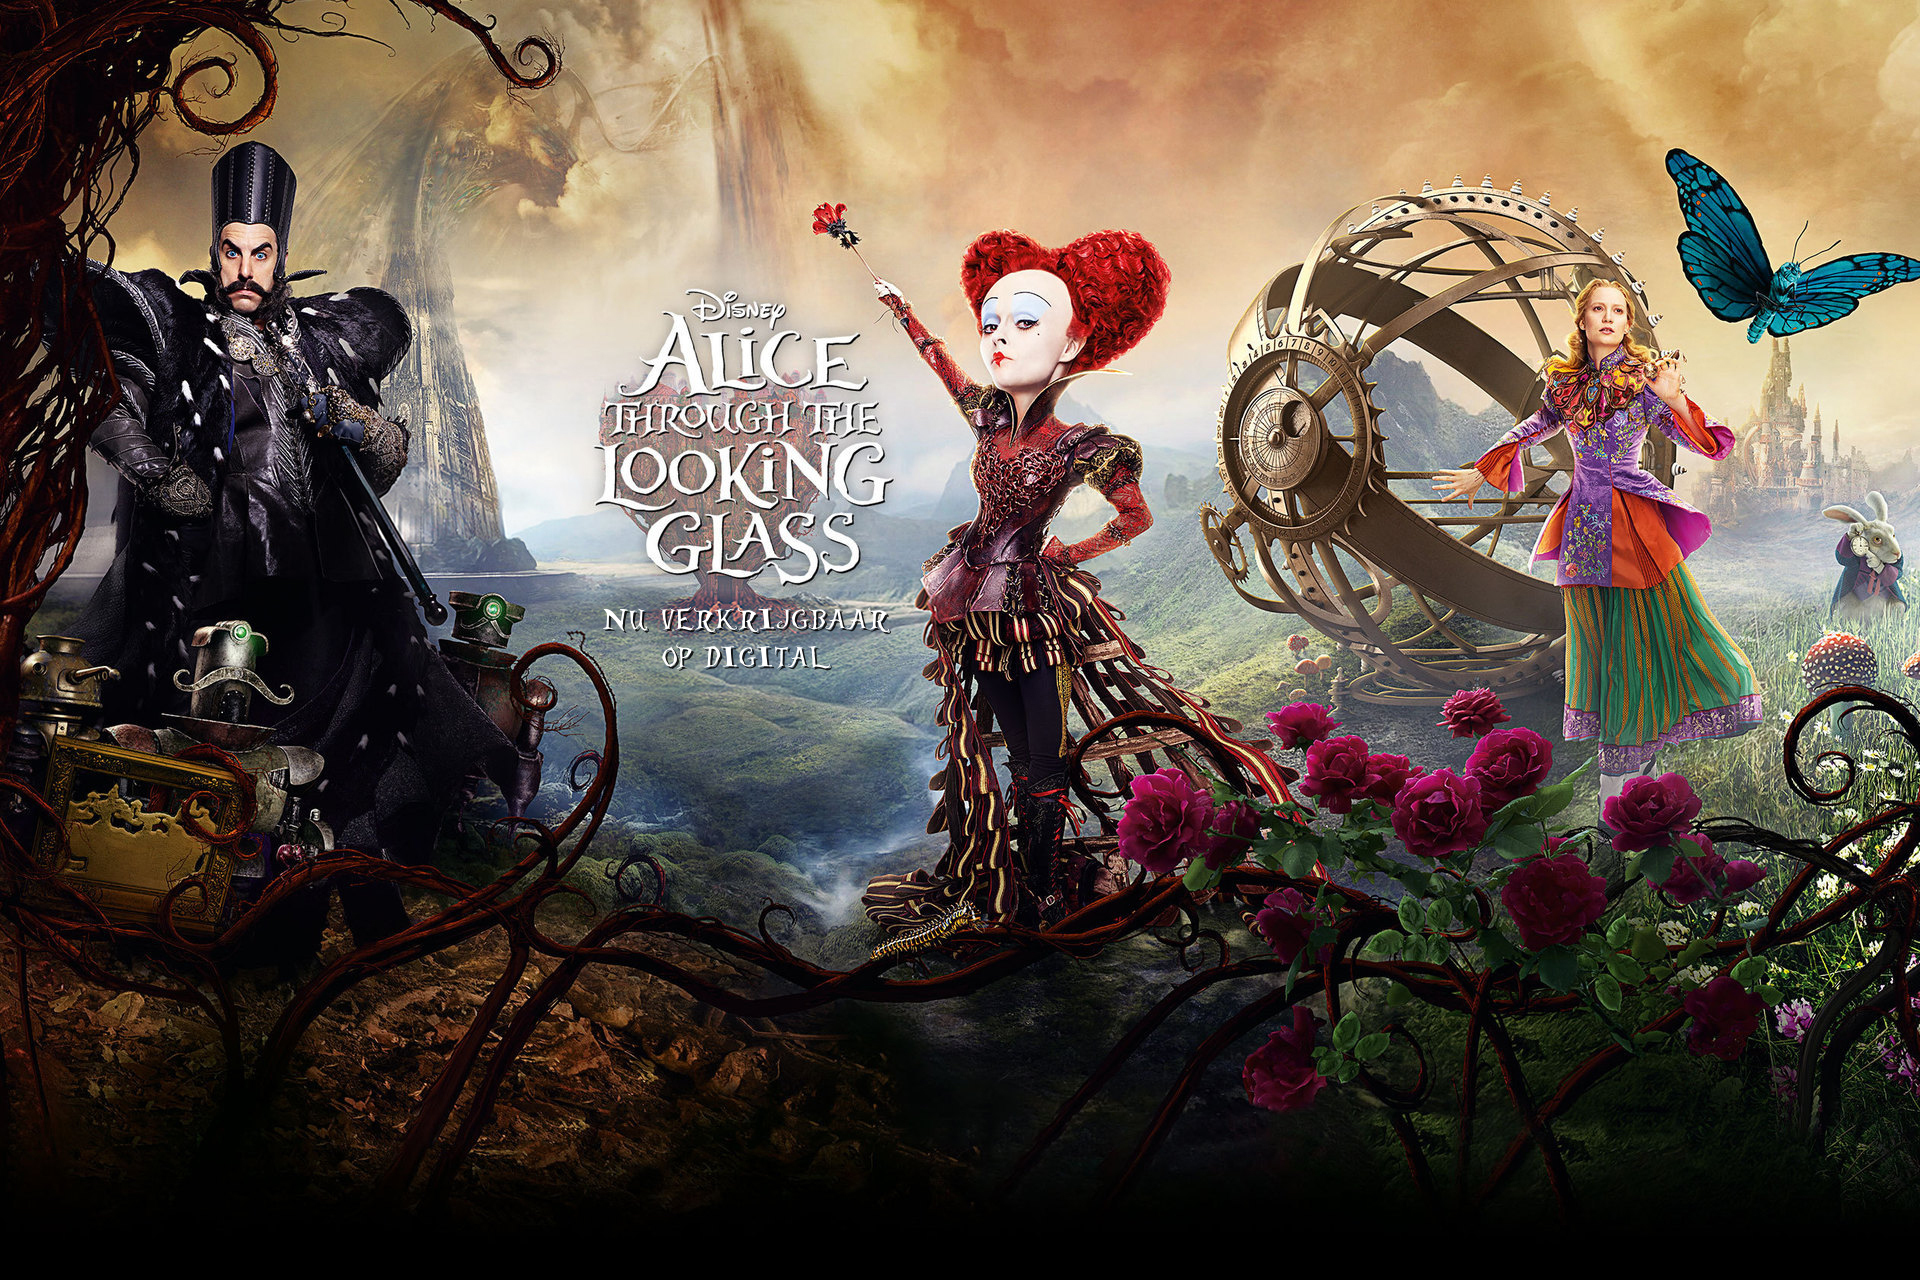 Alice Through the Looking Glass - Local Poster Flex Hero Digital